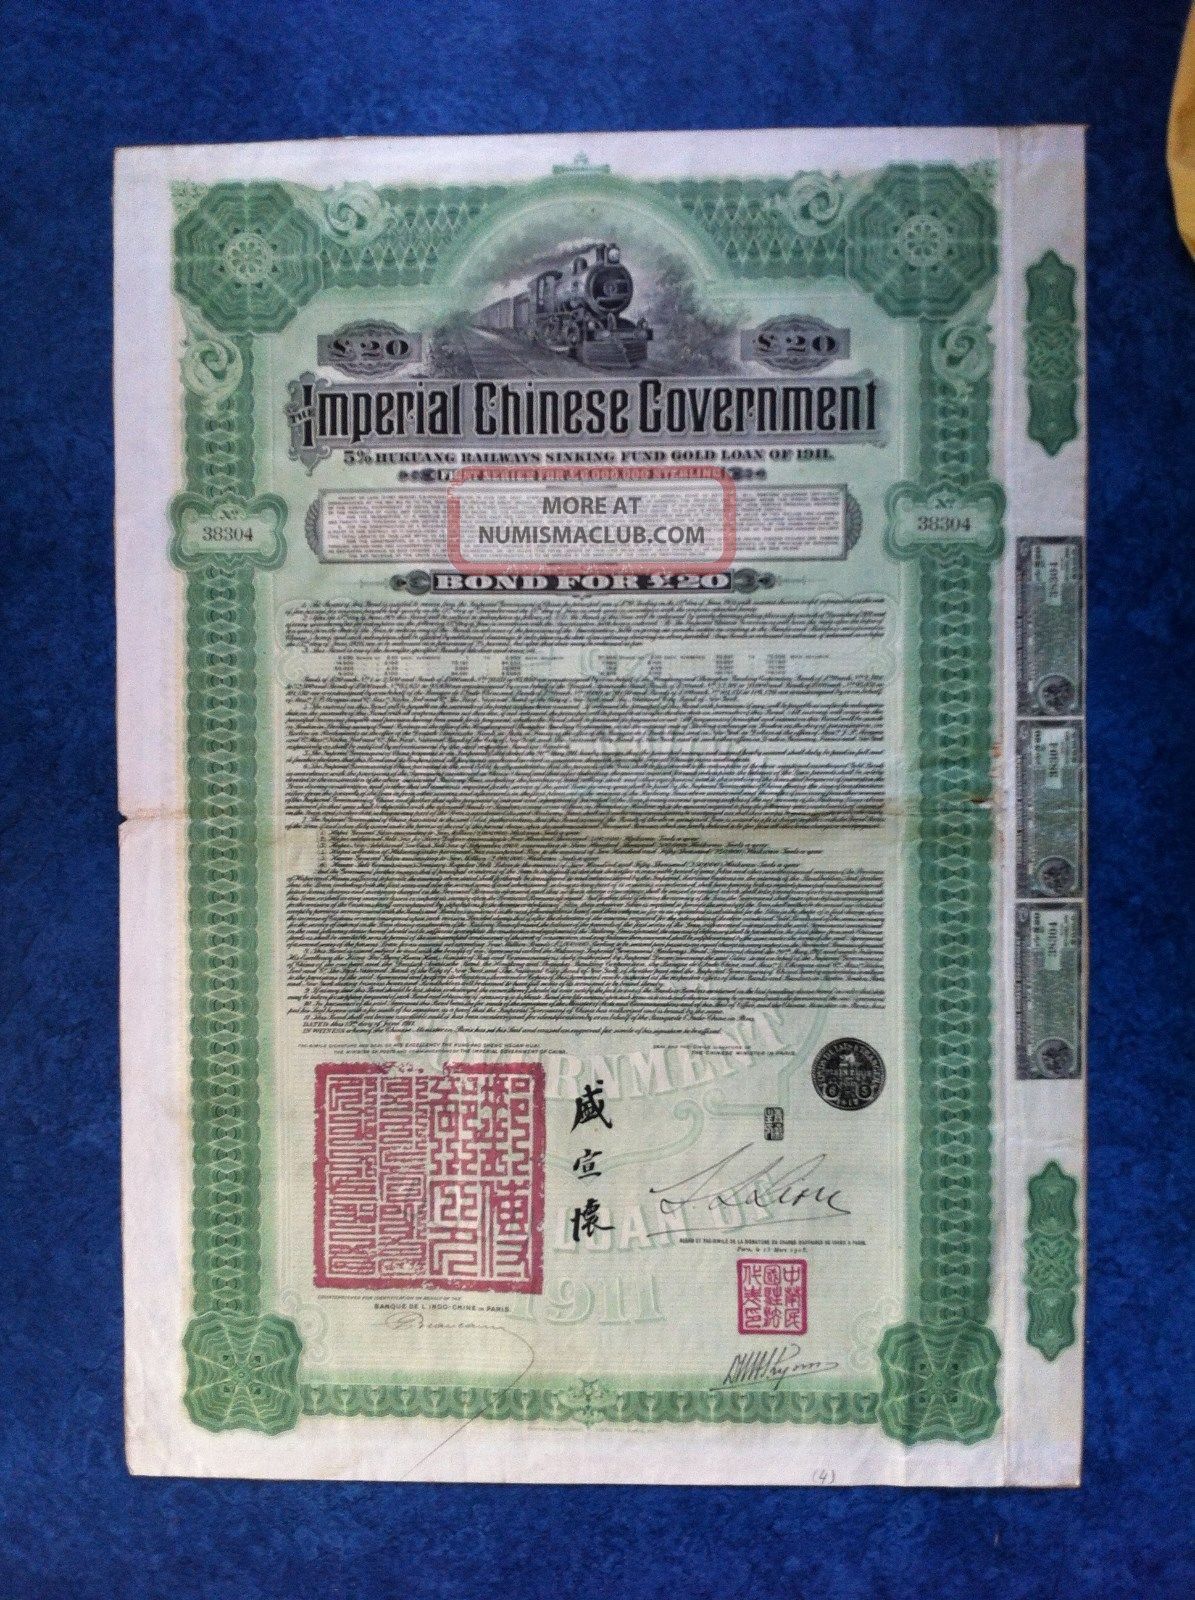 Imperial Chinese Government £20 Gold Loan 5 Hukuang Railways Sinking Bond 1911 Stocks & Bonds, Scripophily photo